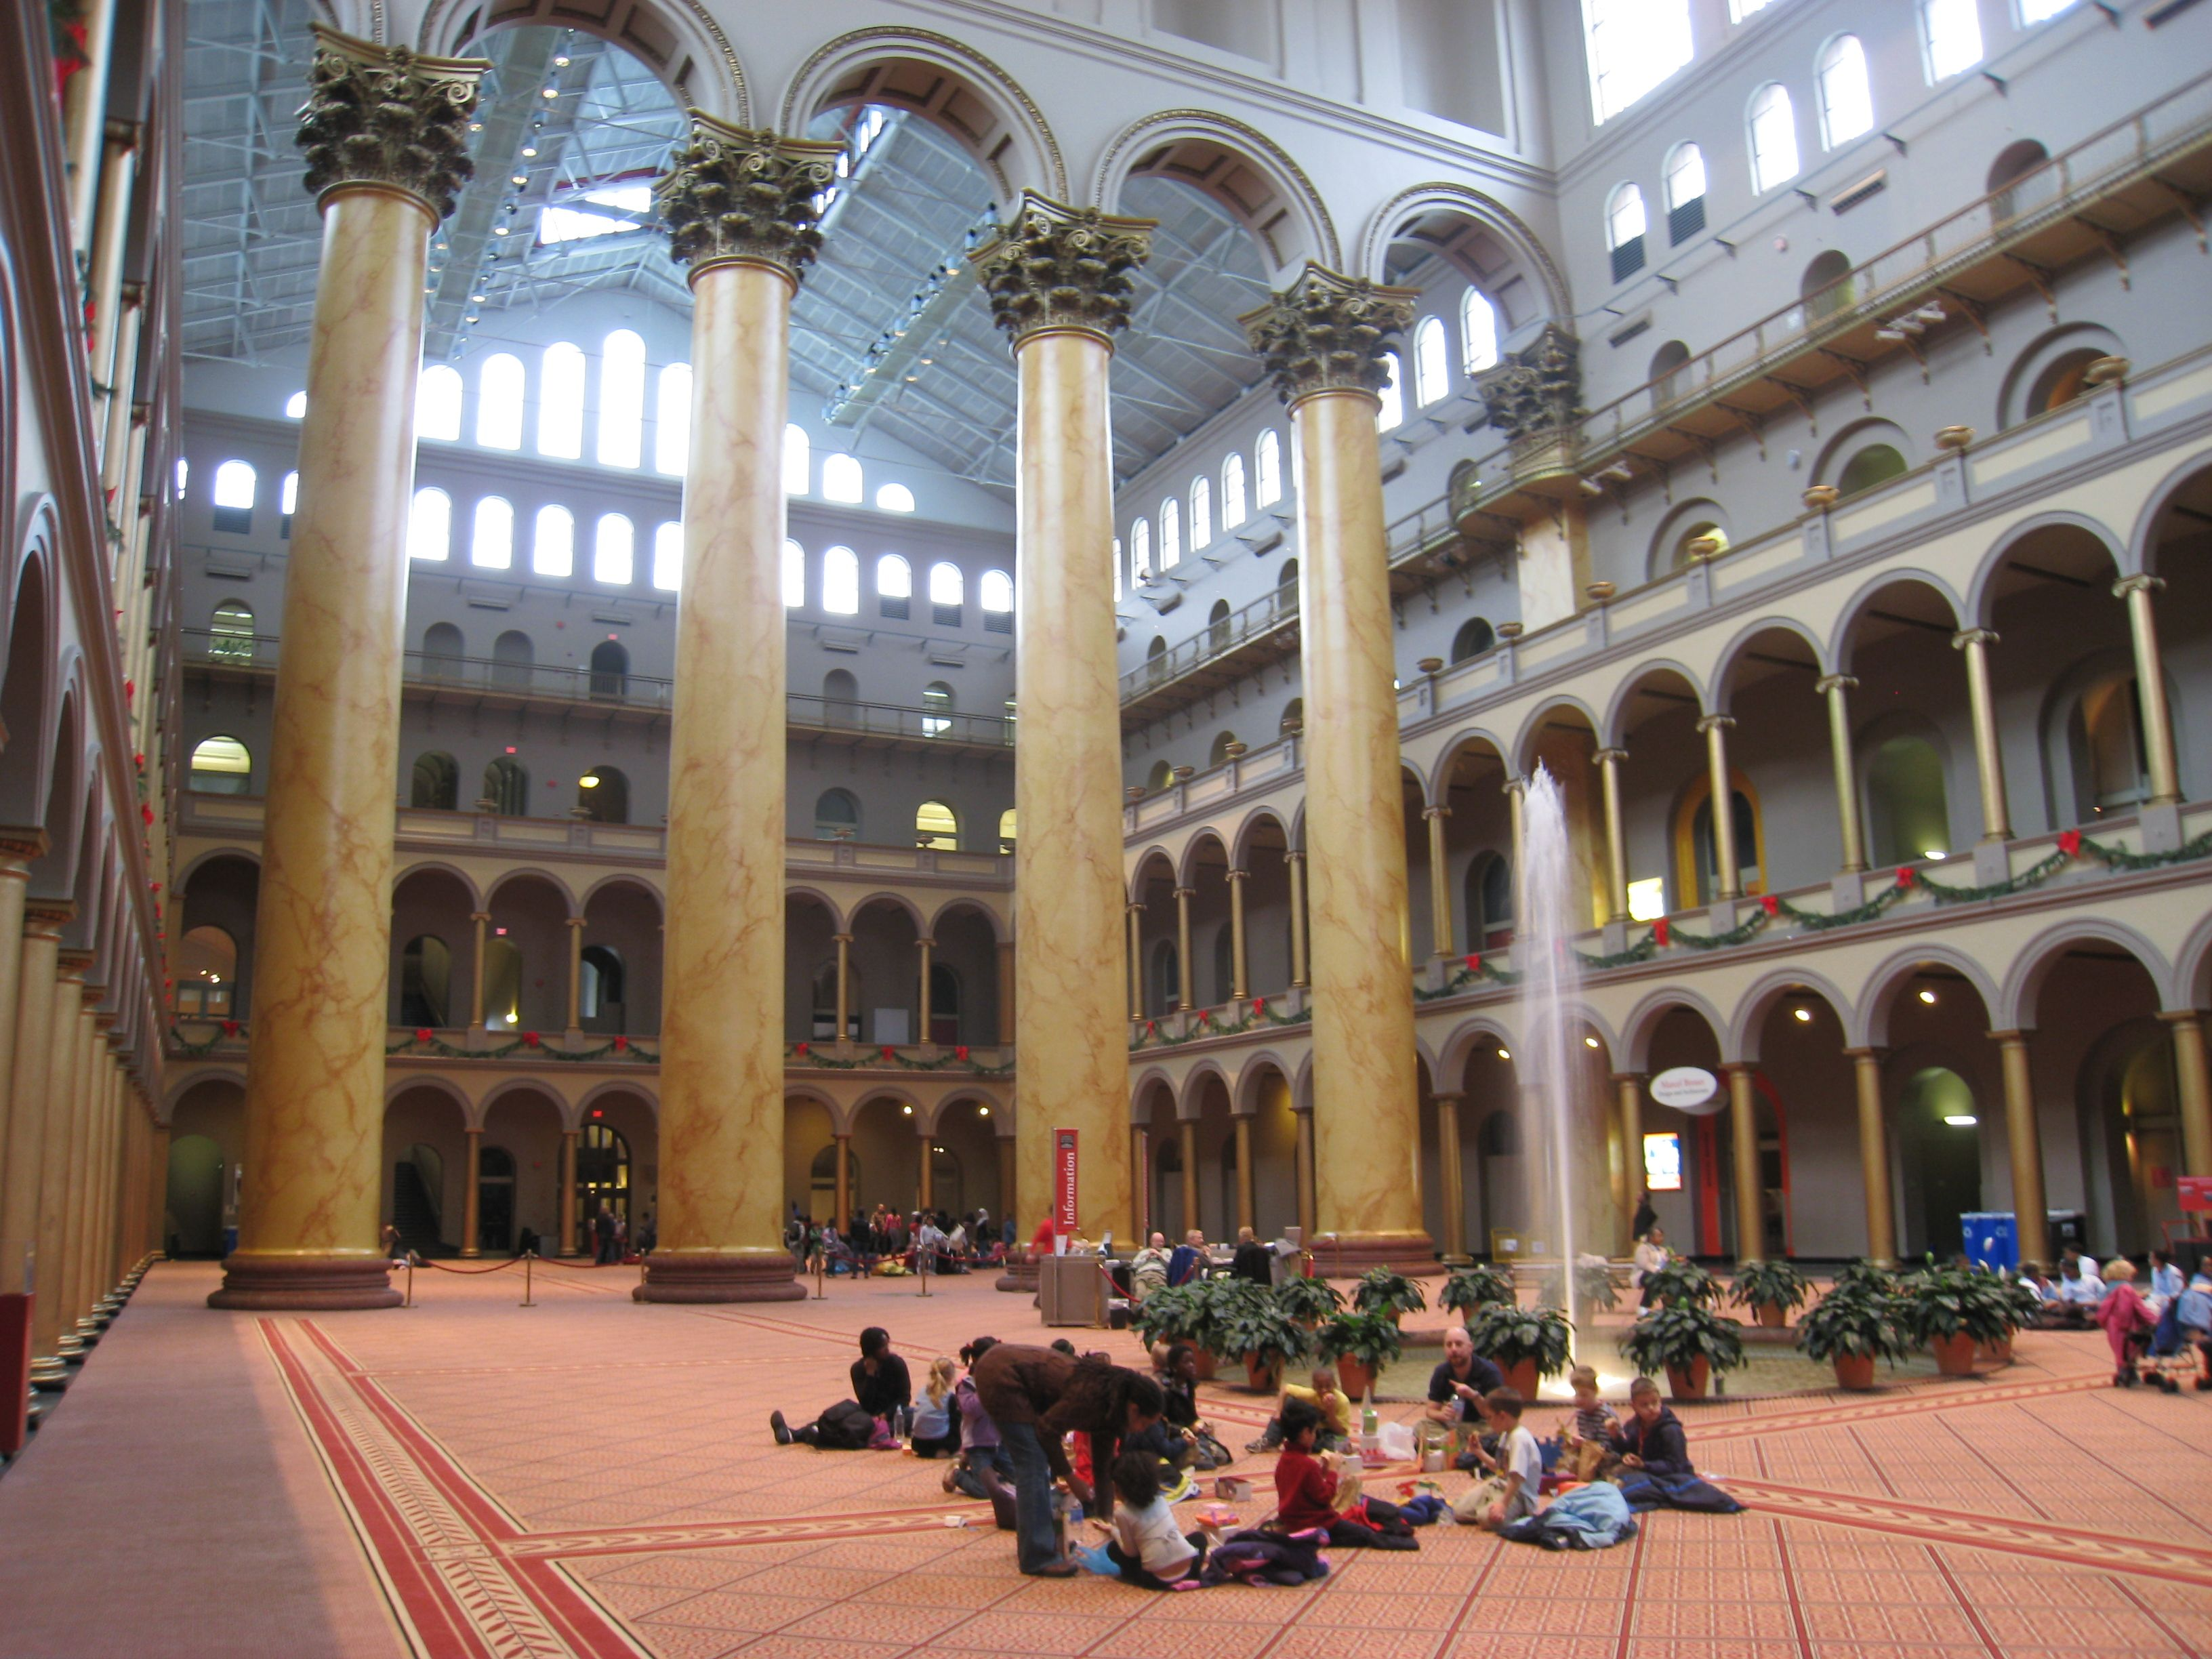 The national building museum washington dc. the national building